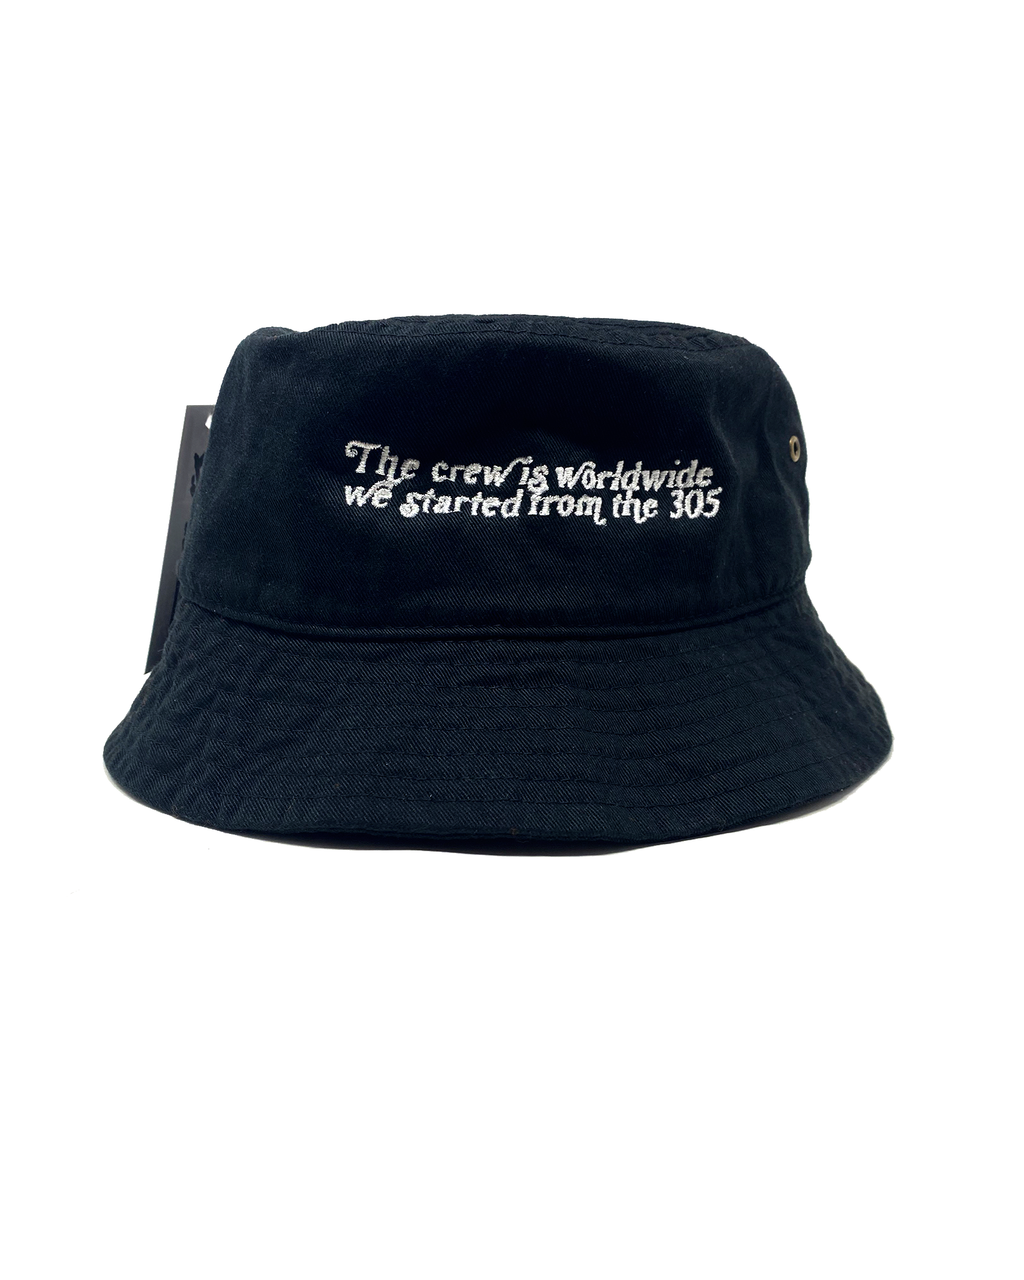 DADE Worldwide Bucket Hat